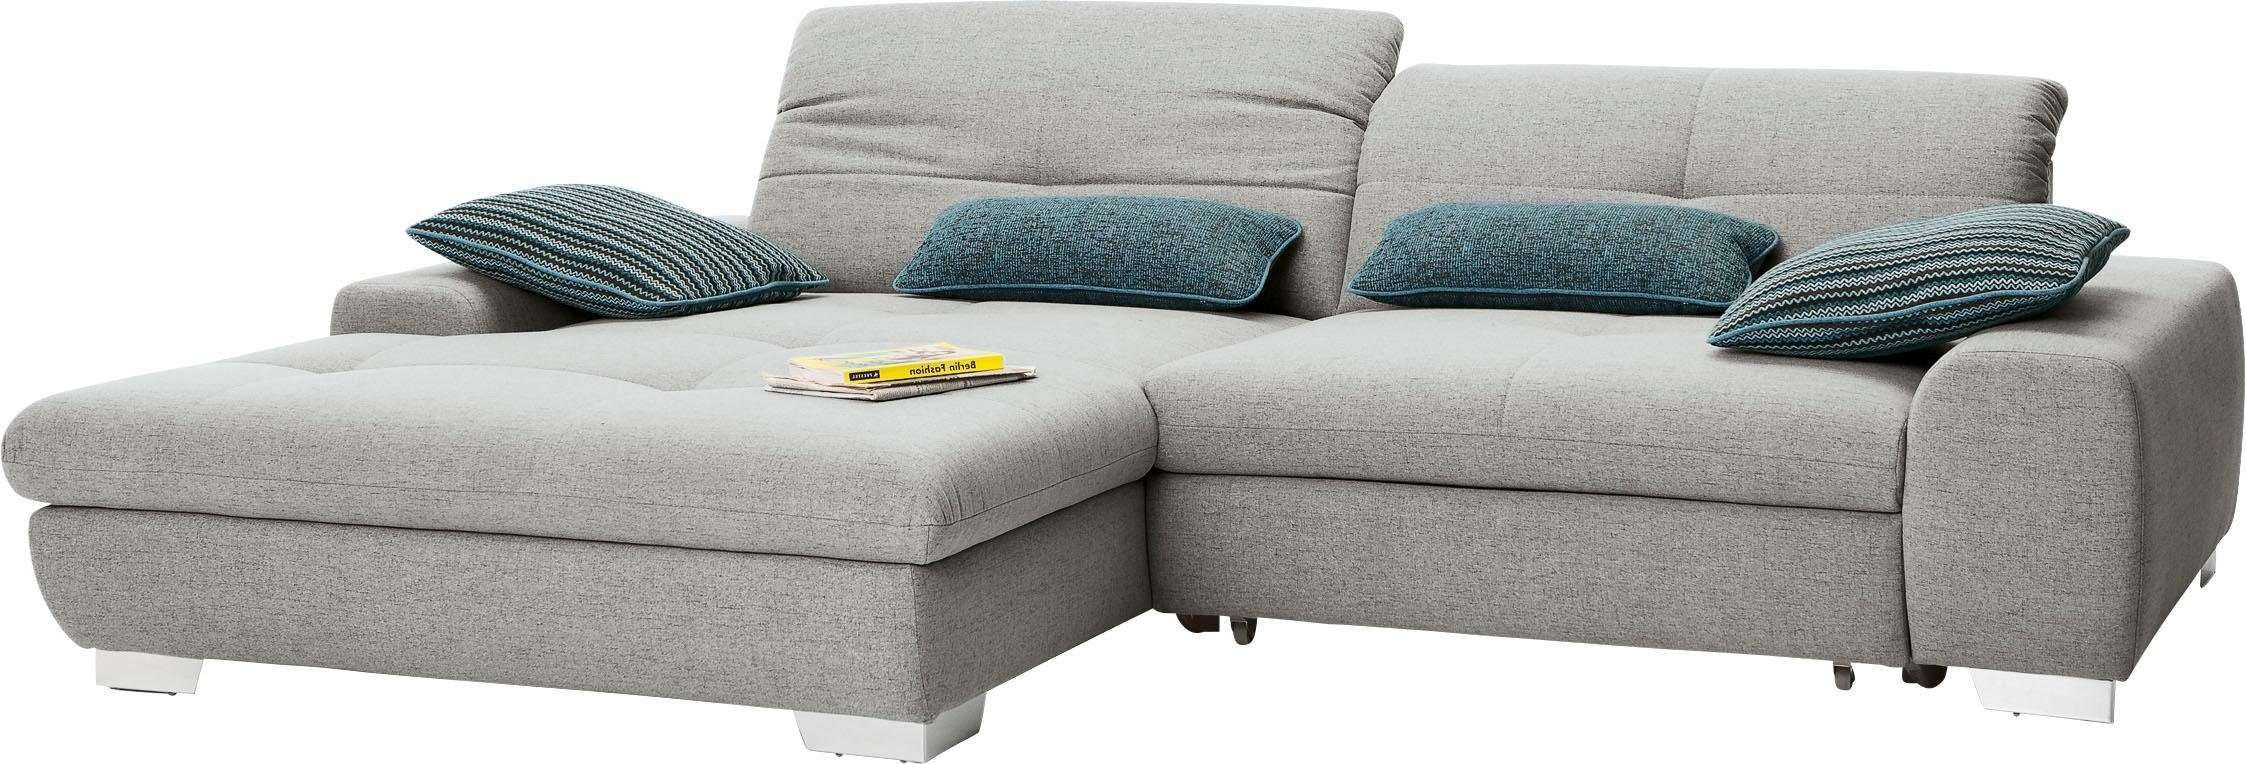 Set One By Musterring Ecksofa So1200 Recamiere Links Oder Rechts Bestellbar Wahlweise Mit Bettfunktion Bestellen Baur